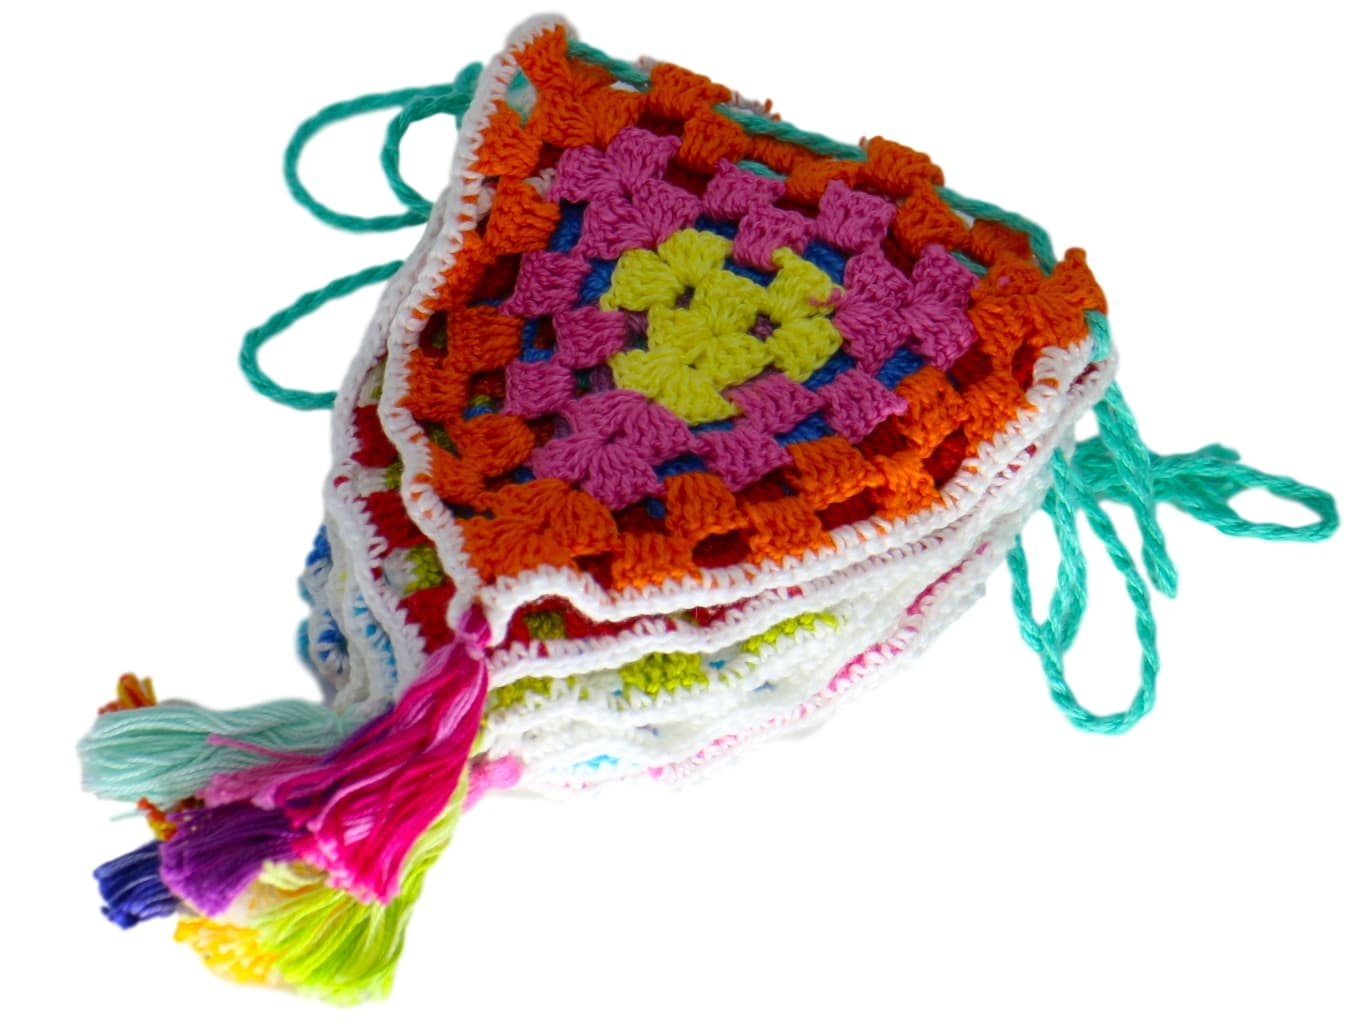 Banderola crochet colorida(1)